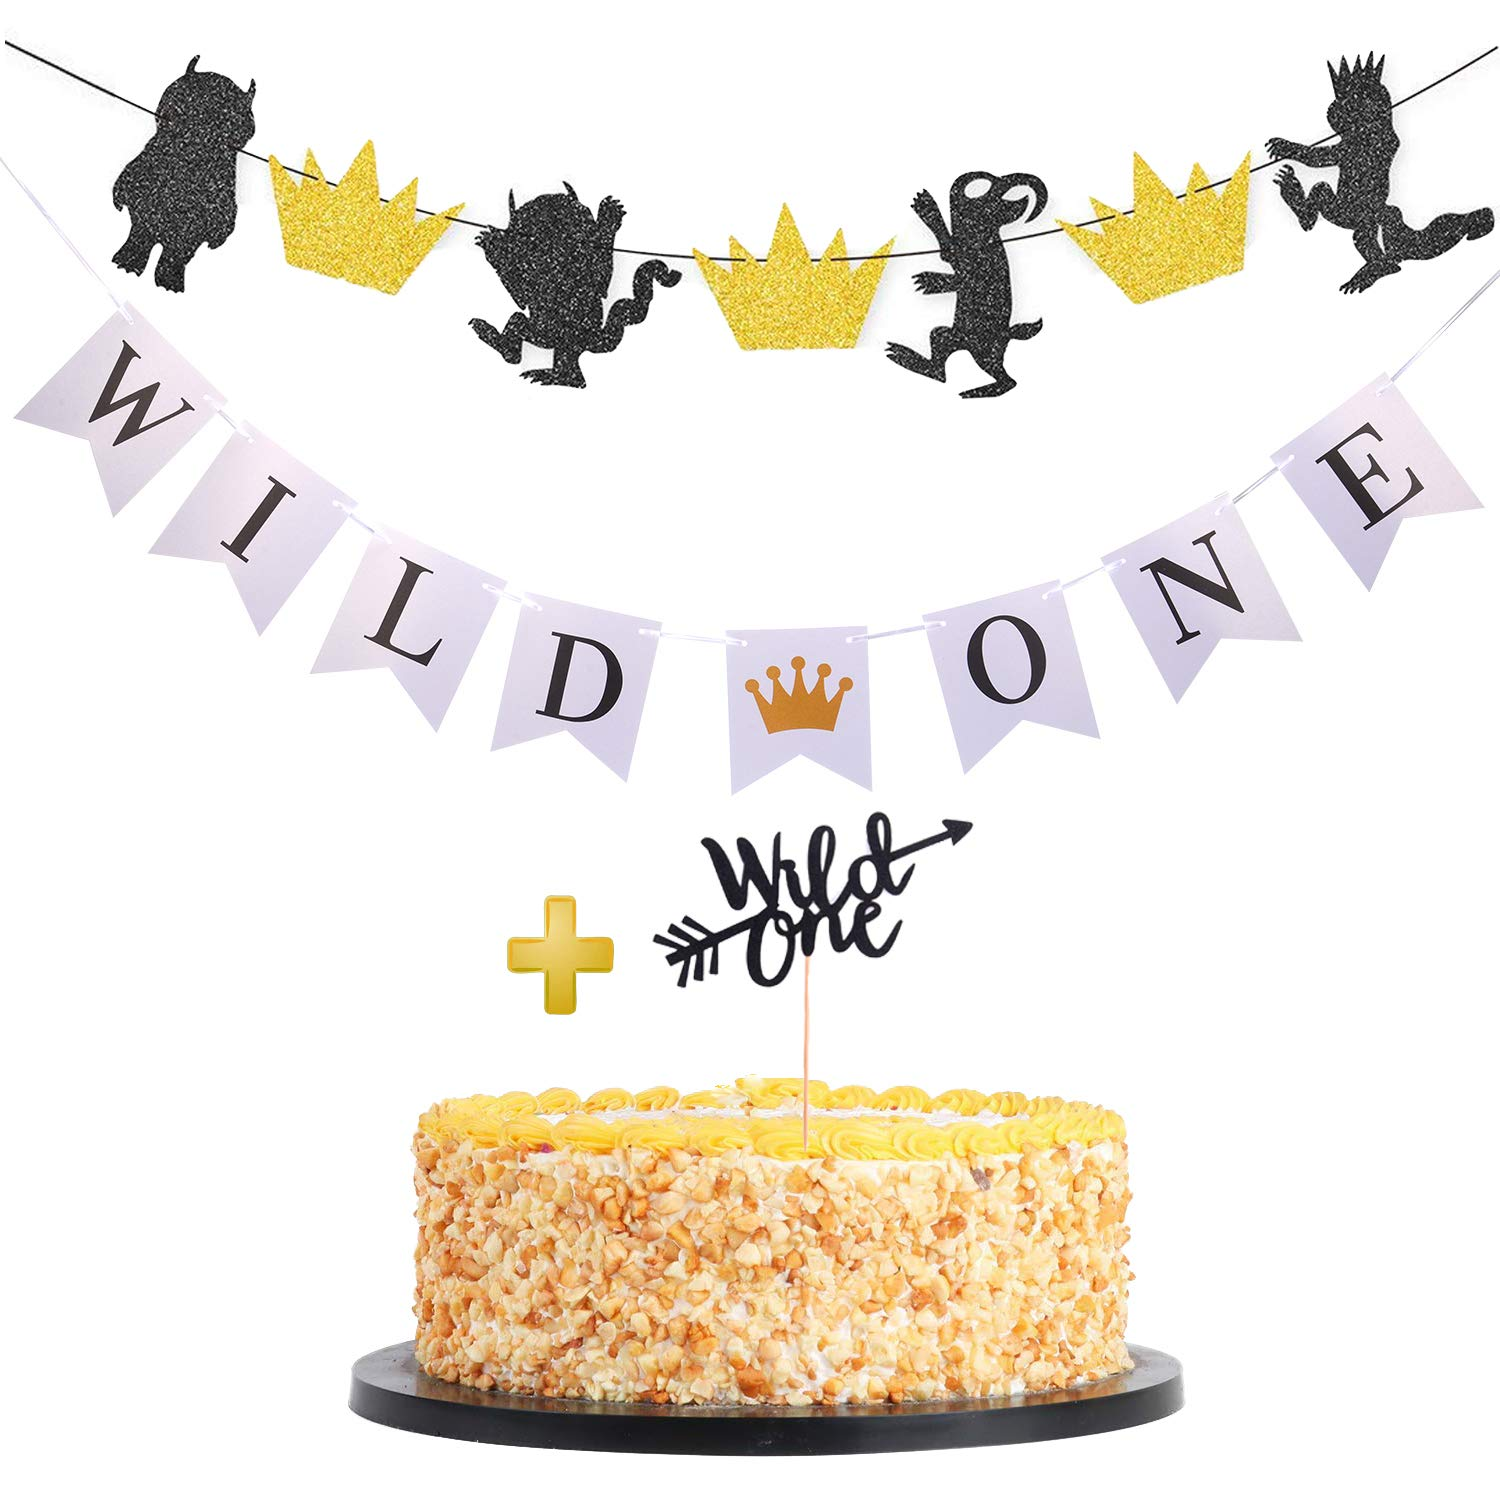 Weimaro Where the Wild Things Are Inspired Party Supplies & Wild One Banner with Cake Toppers Decorations for 1st Birthday Party Table/Backdrop/Photo Prop Decorations